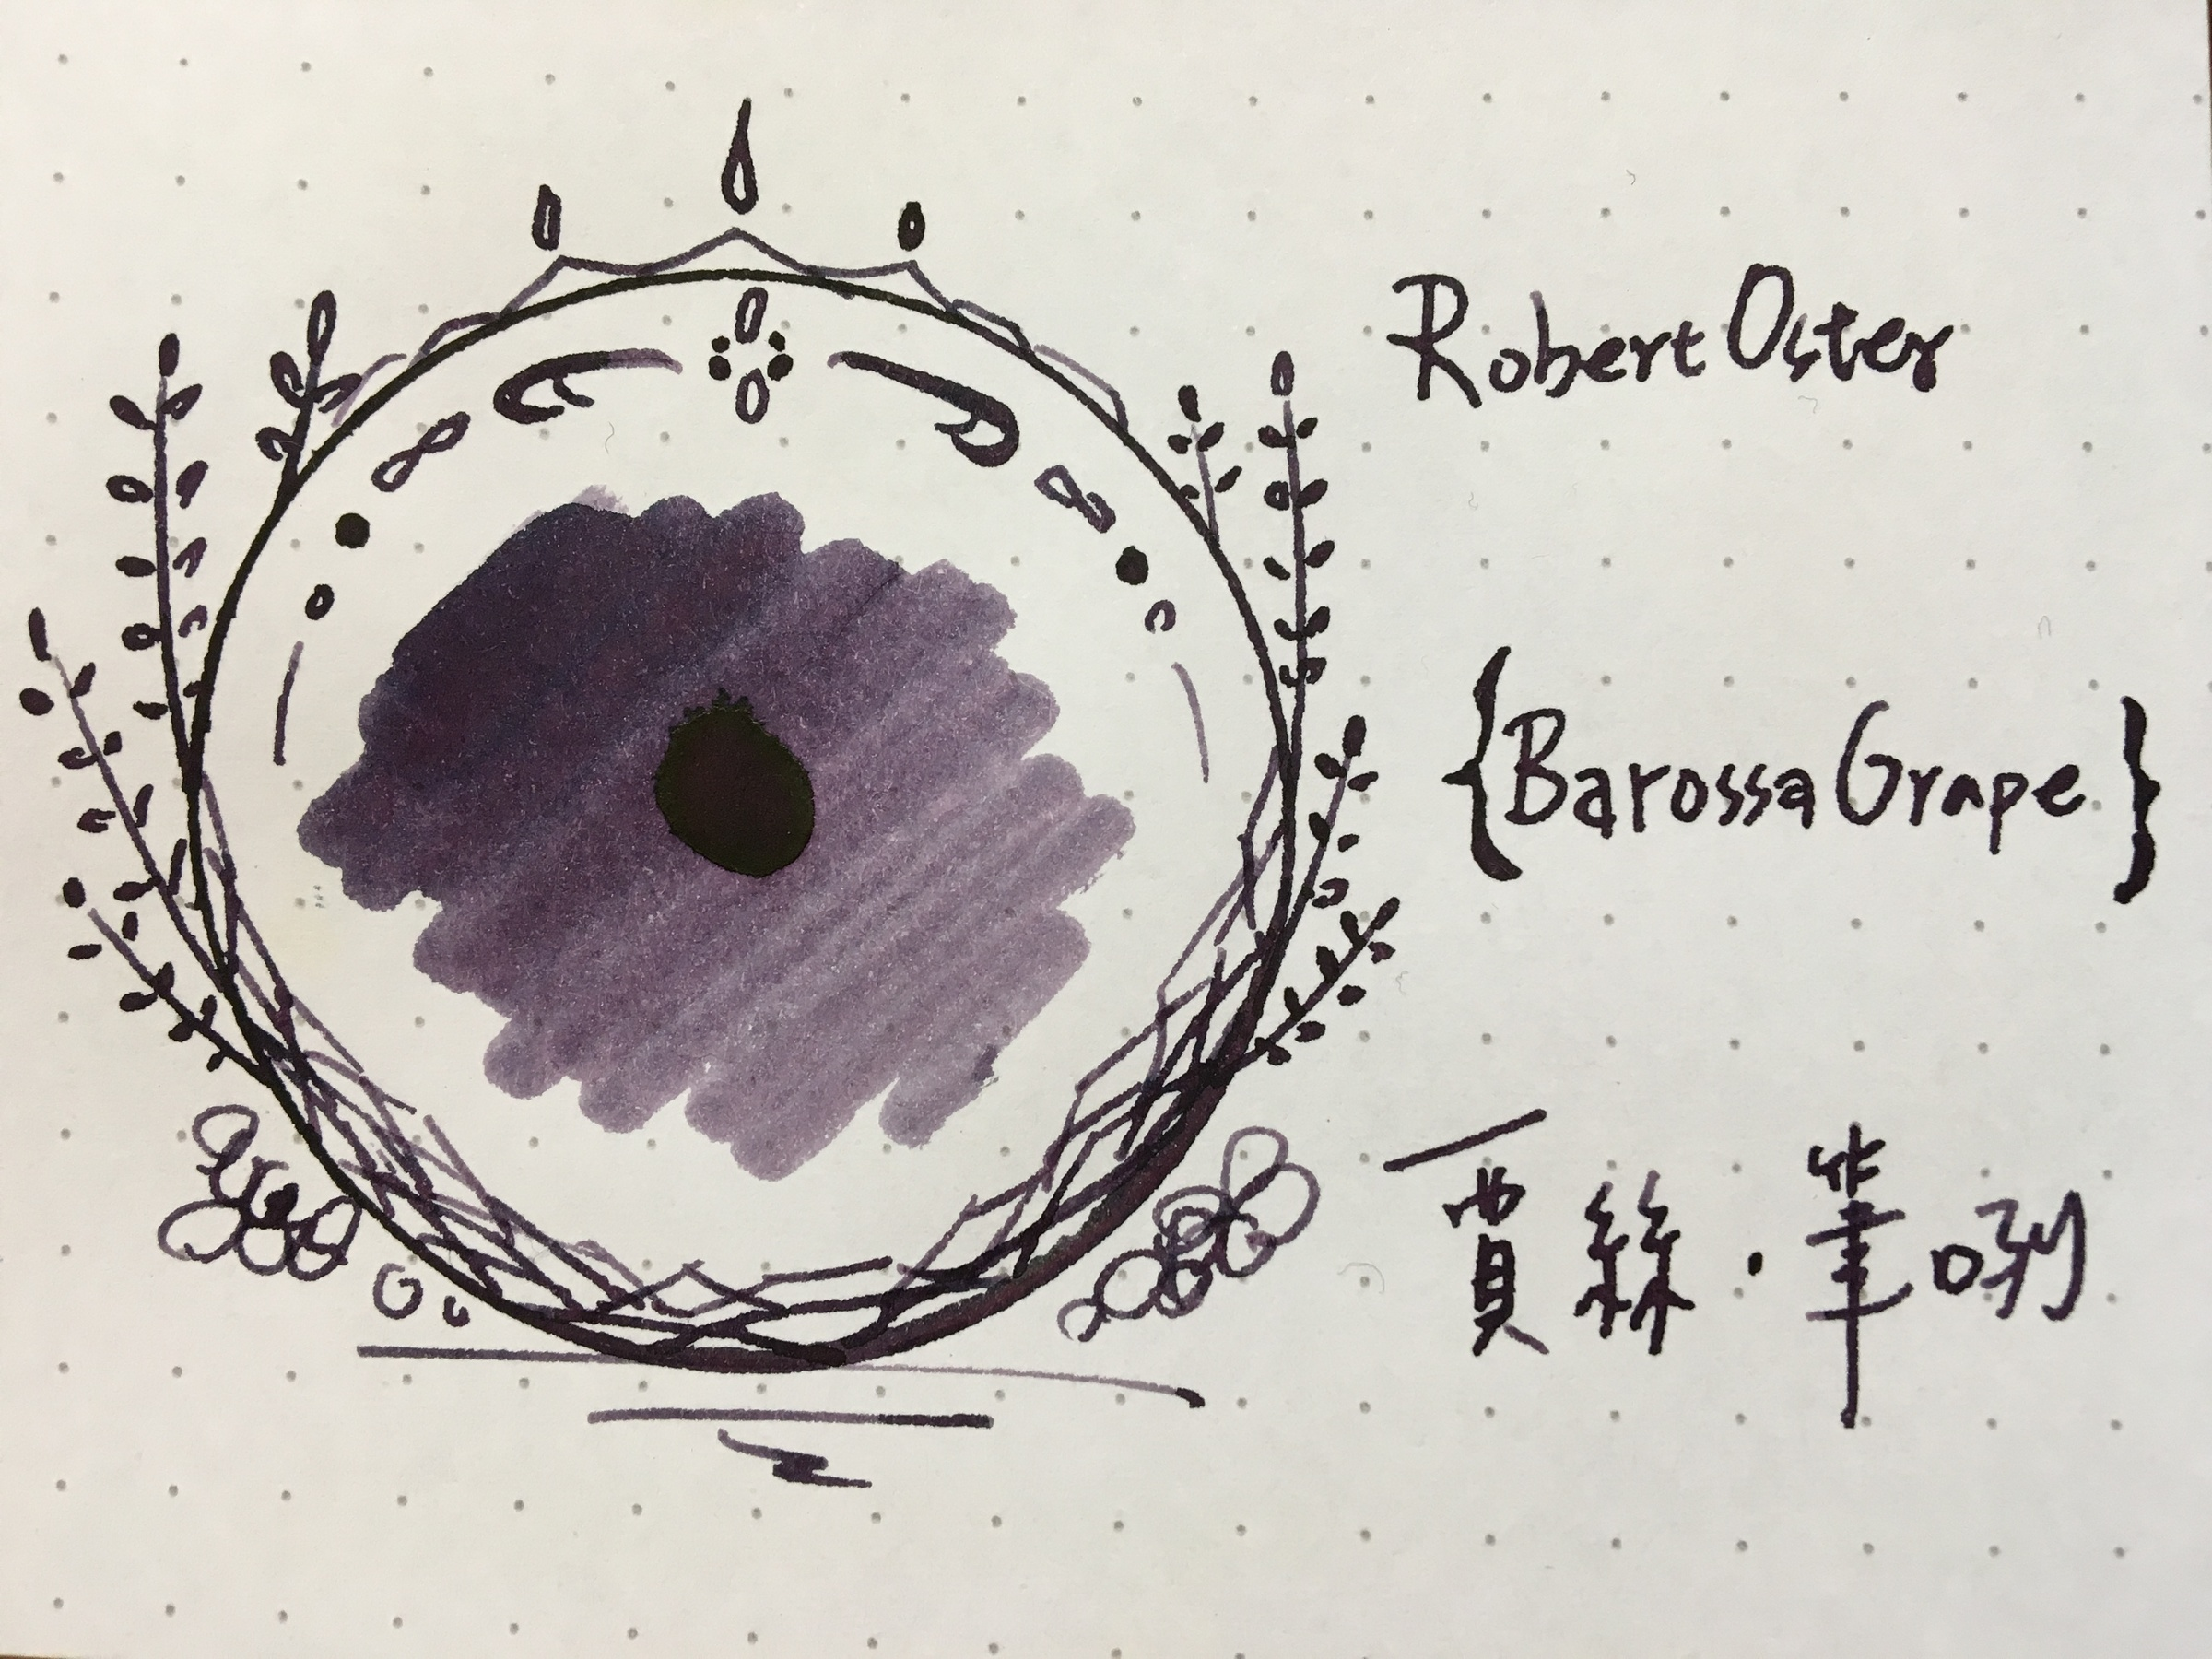 Barossa Grape巴羅薩葡萄03.jpg